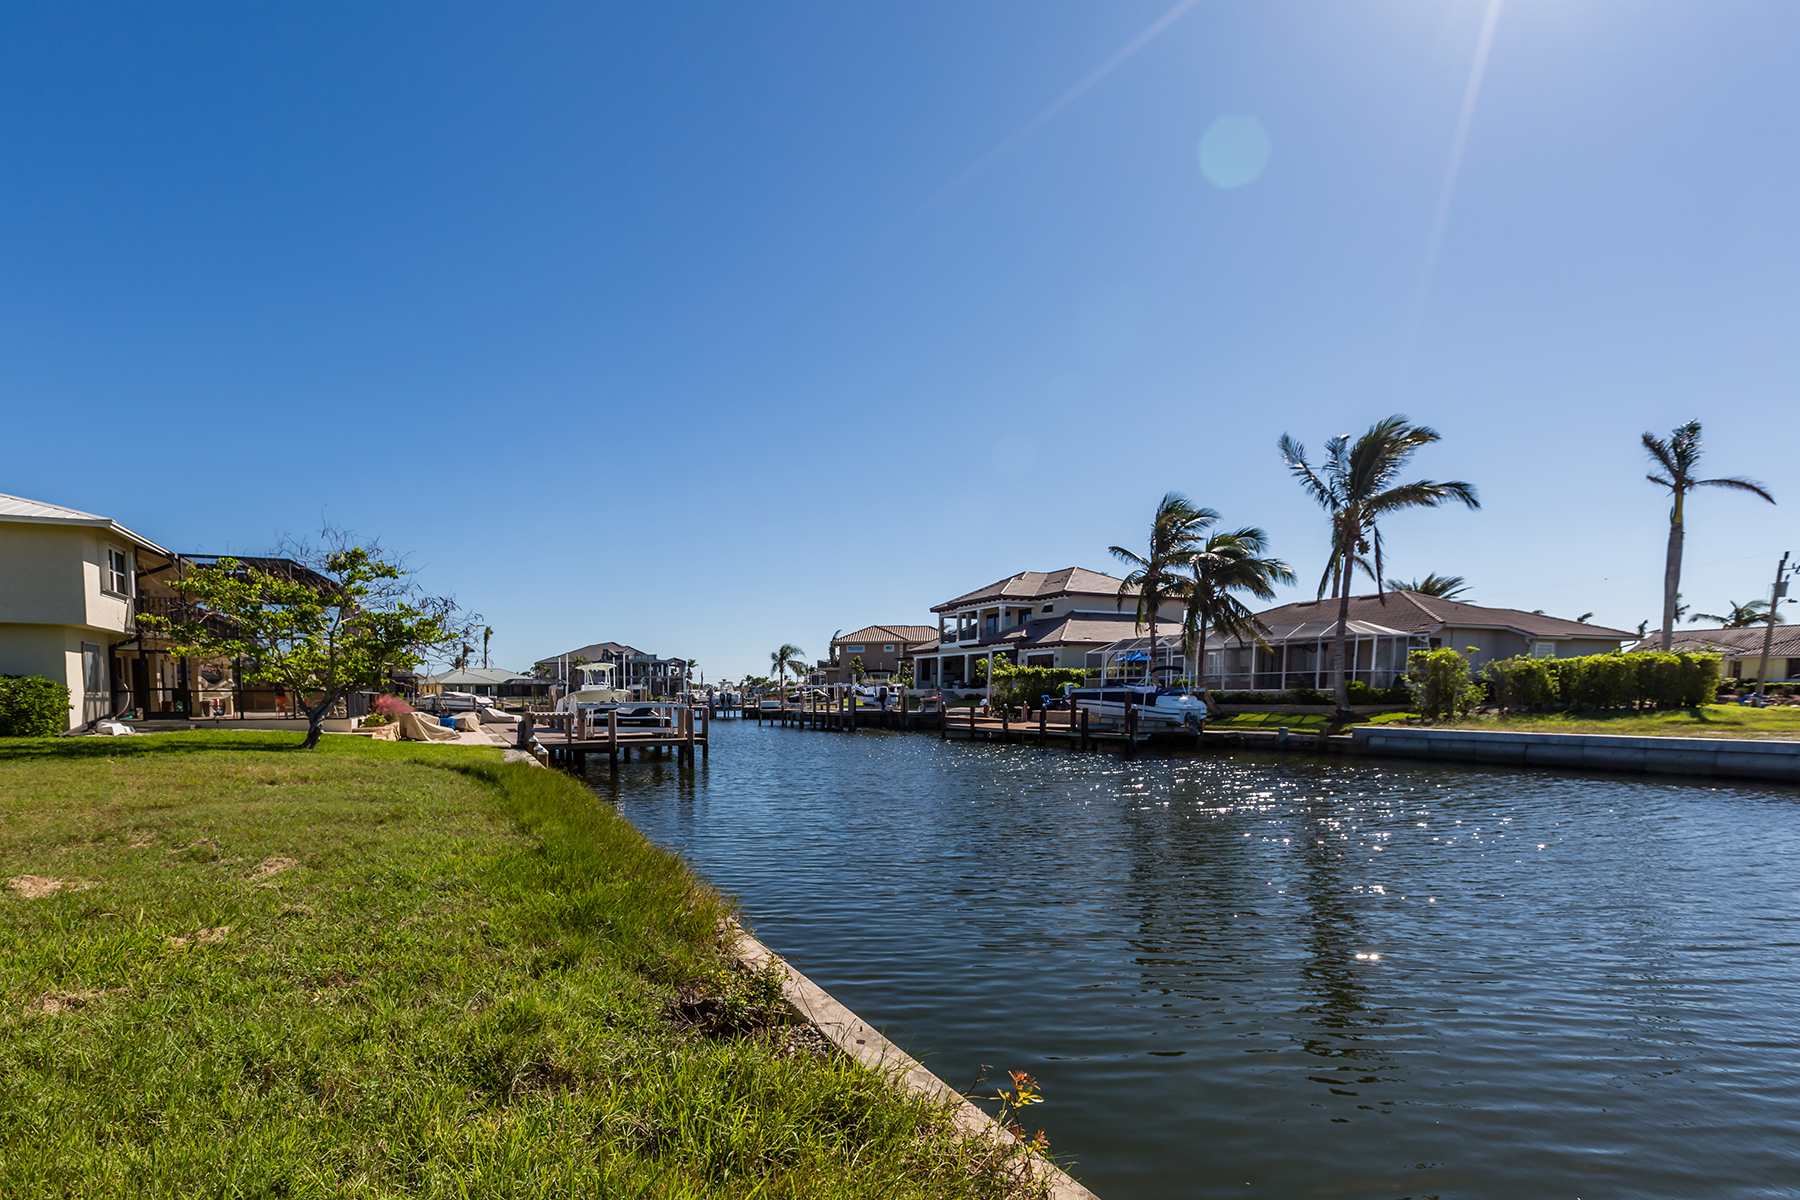 Land for Sale at MARCO ISLAND 1173 Lighthouse Ct, Marco Island, Florida 34145 United States